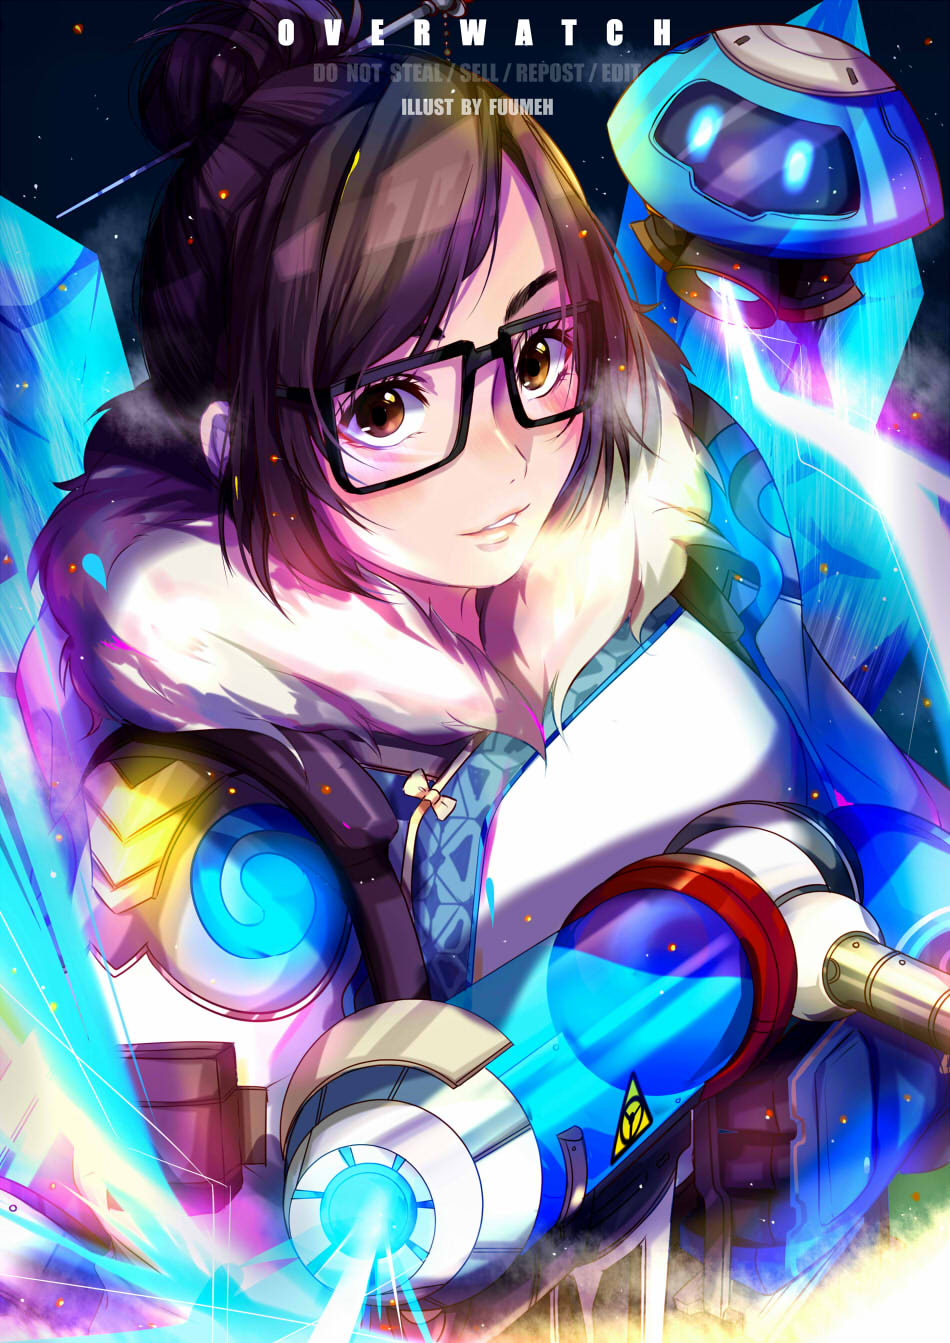 1girl black-framed_eyewear blue_gloves breasts brown_eyes brown_hair canister coat copyright_name drone fur-trimmed_jacket fur_coat fur_trim glasses gloves gun hair_bun hair_ornament hair_stick highres holding holding_gun holding_weapon jacket long_sleeves looking_at_viewer medium_breasts mei_(overwatch) overwatch parted_lips pinochi robot short_hair signature smile snowball_(overwatch) solo upper_body watermark weapon winter_clothes winter_coat